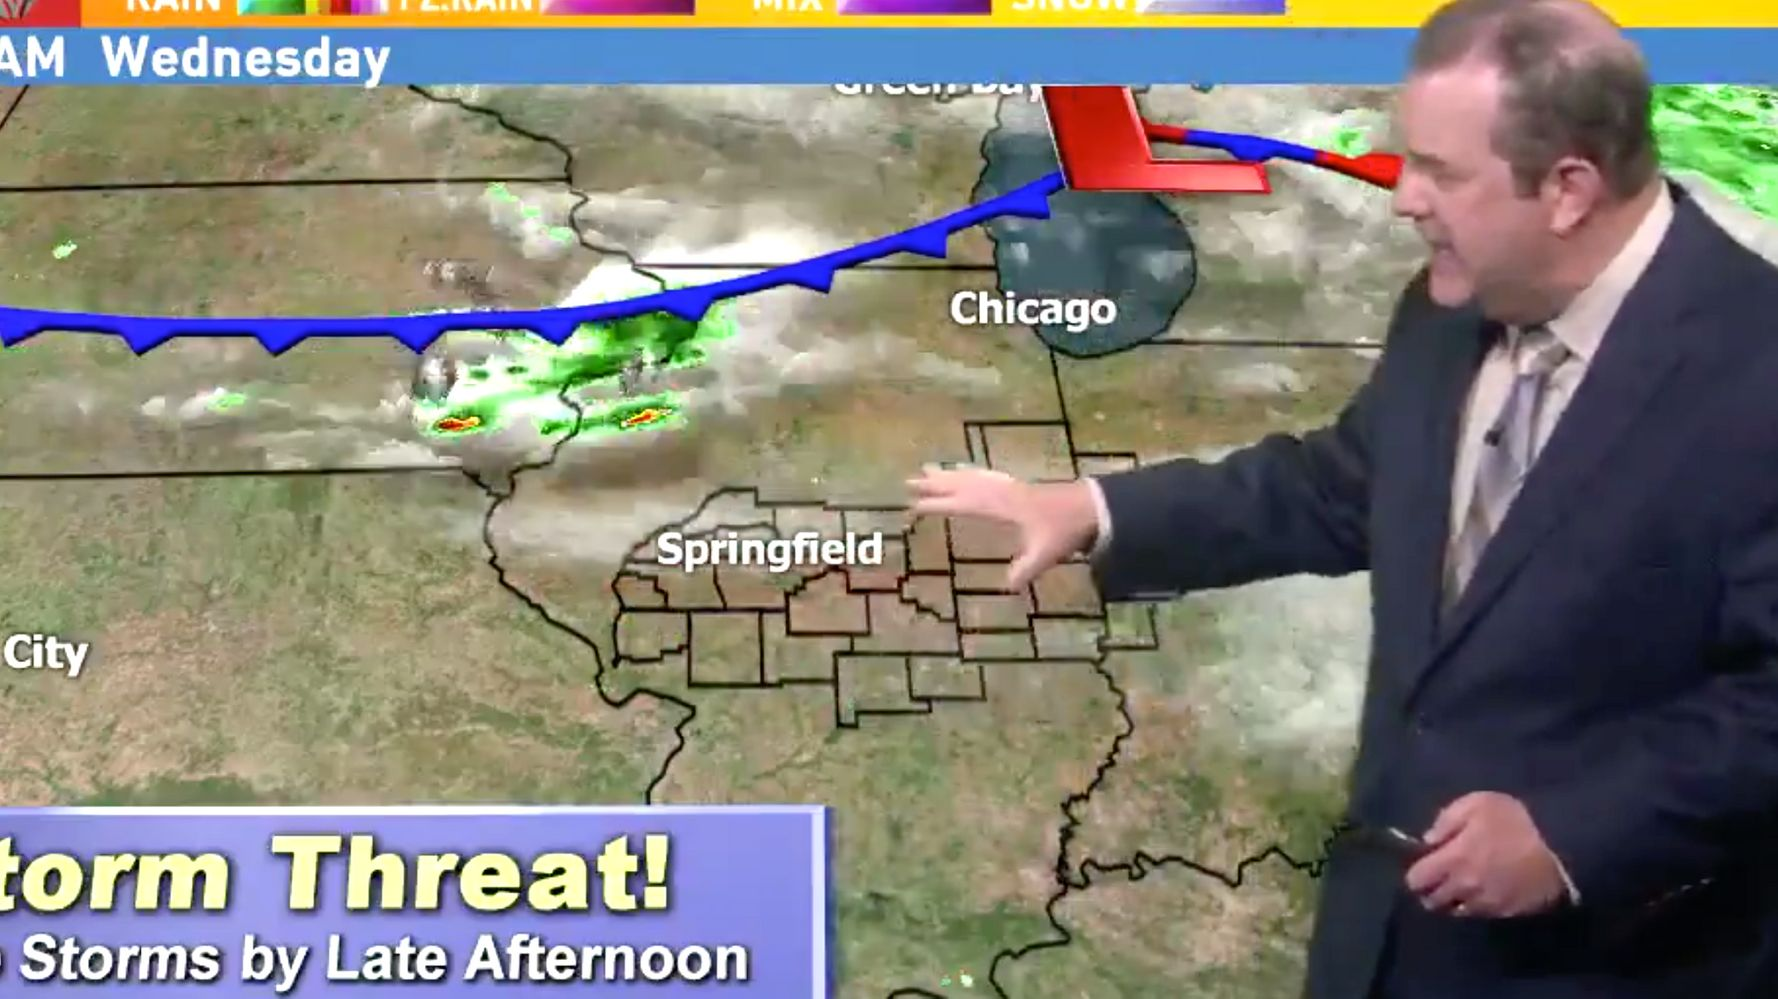 Weatherman Hasn't Appeared On Sinclair Station Since